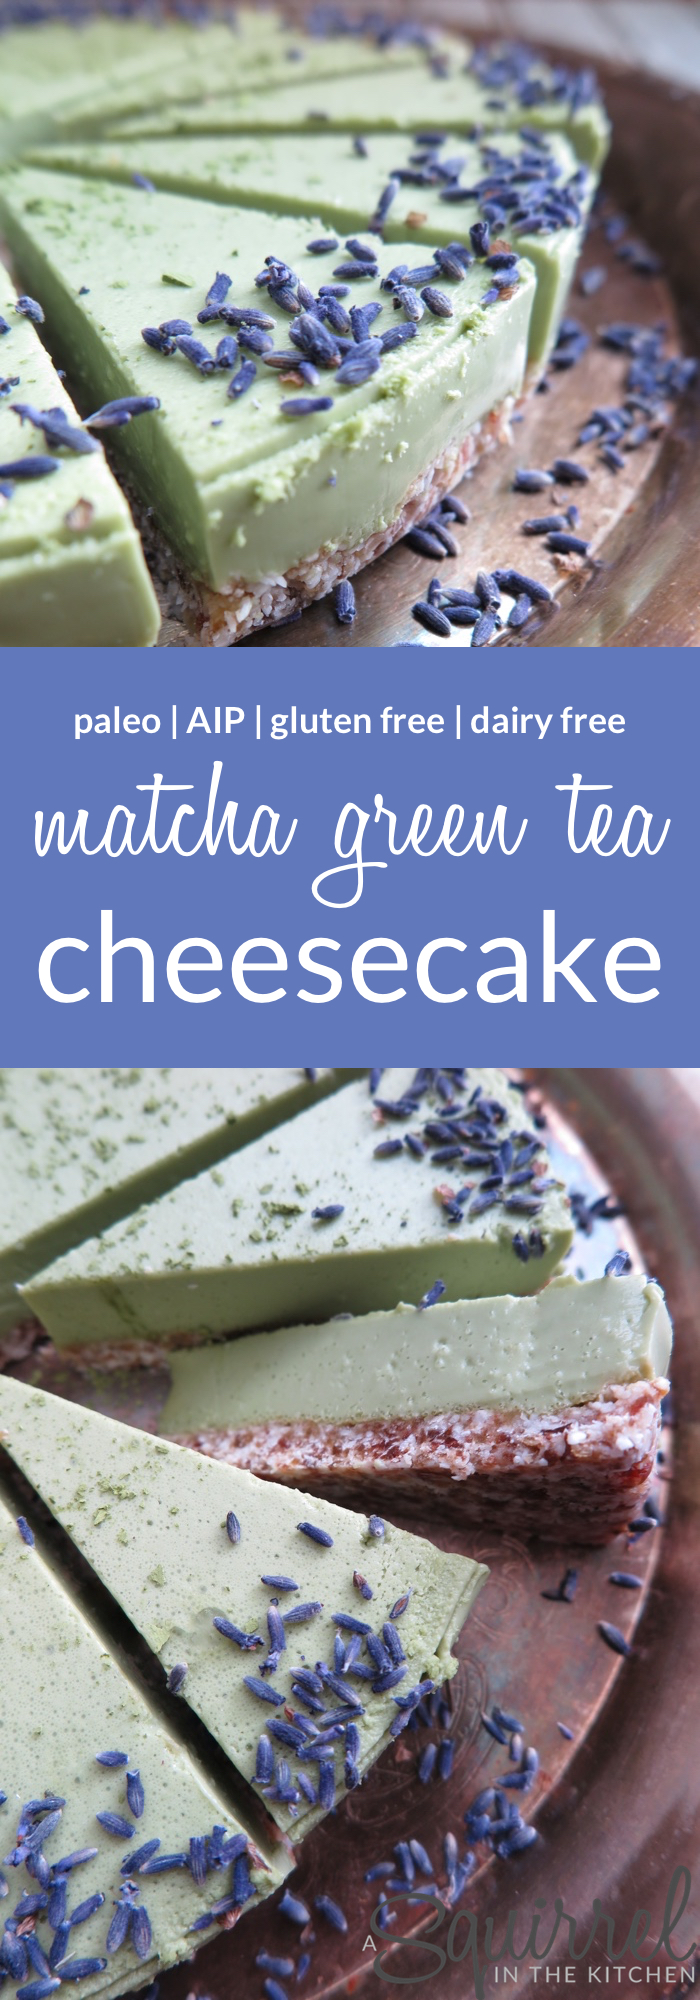 No-Bake Matcha Green Tea Cheesecake [Dairy Free-Gluten Free-Paleo-AIP]